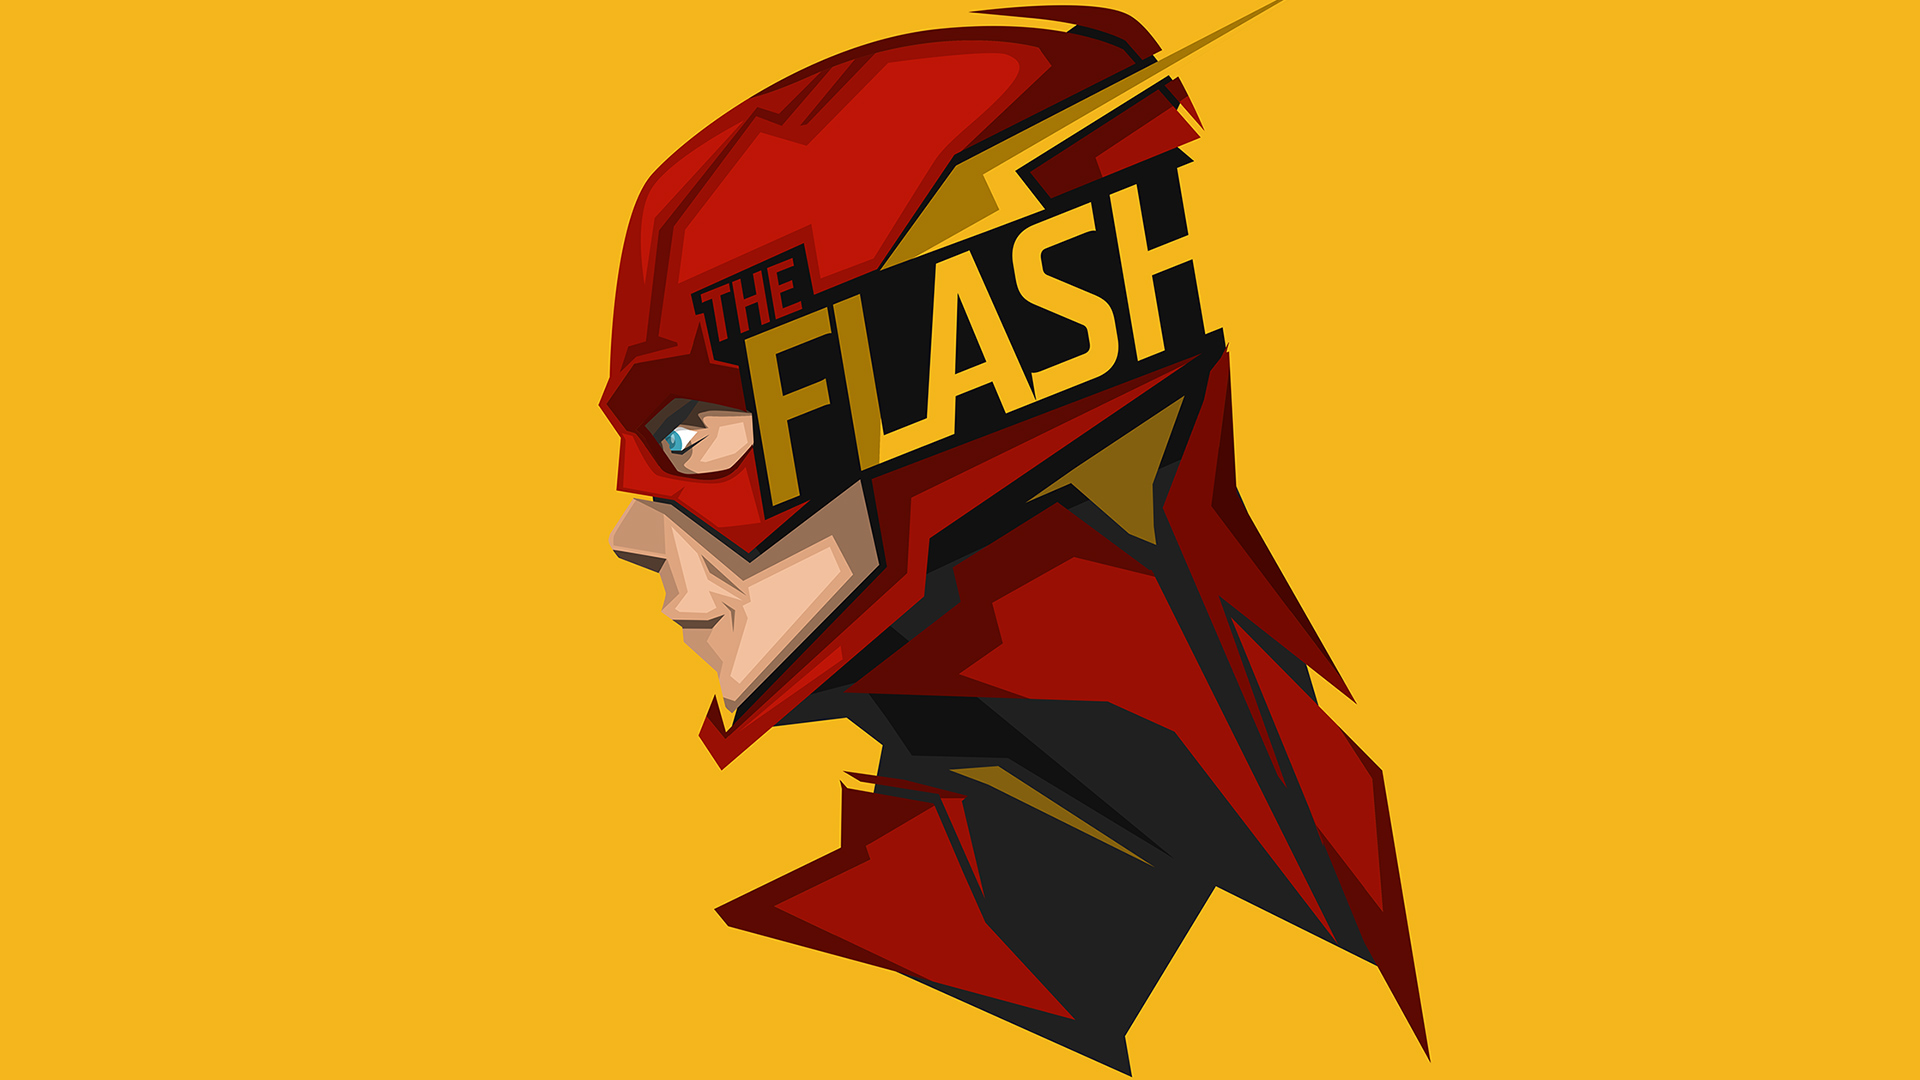 Flash Wallpaper Desktop ~ Sdeerwallpaper